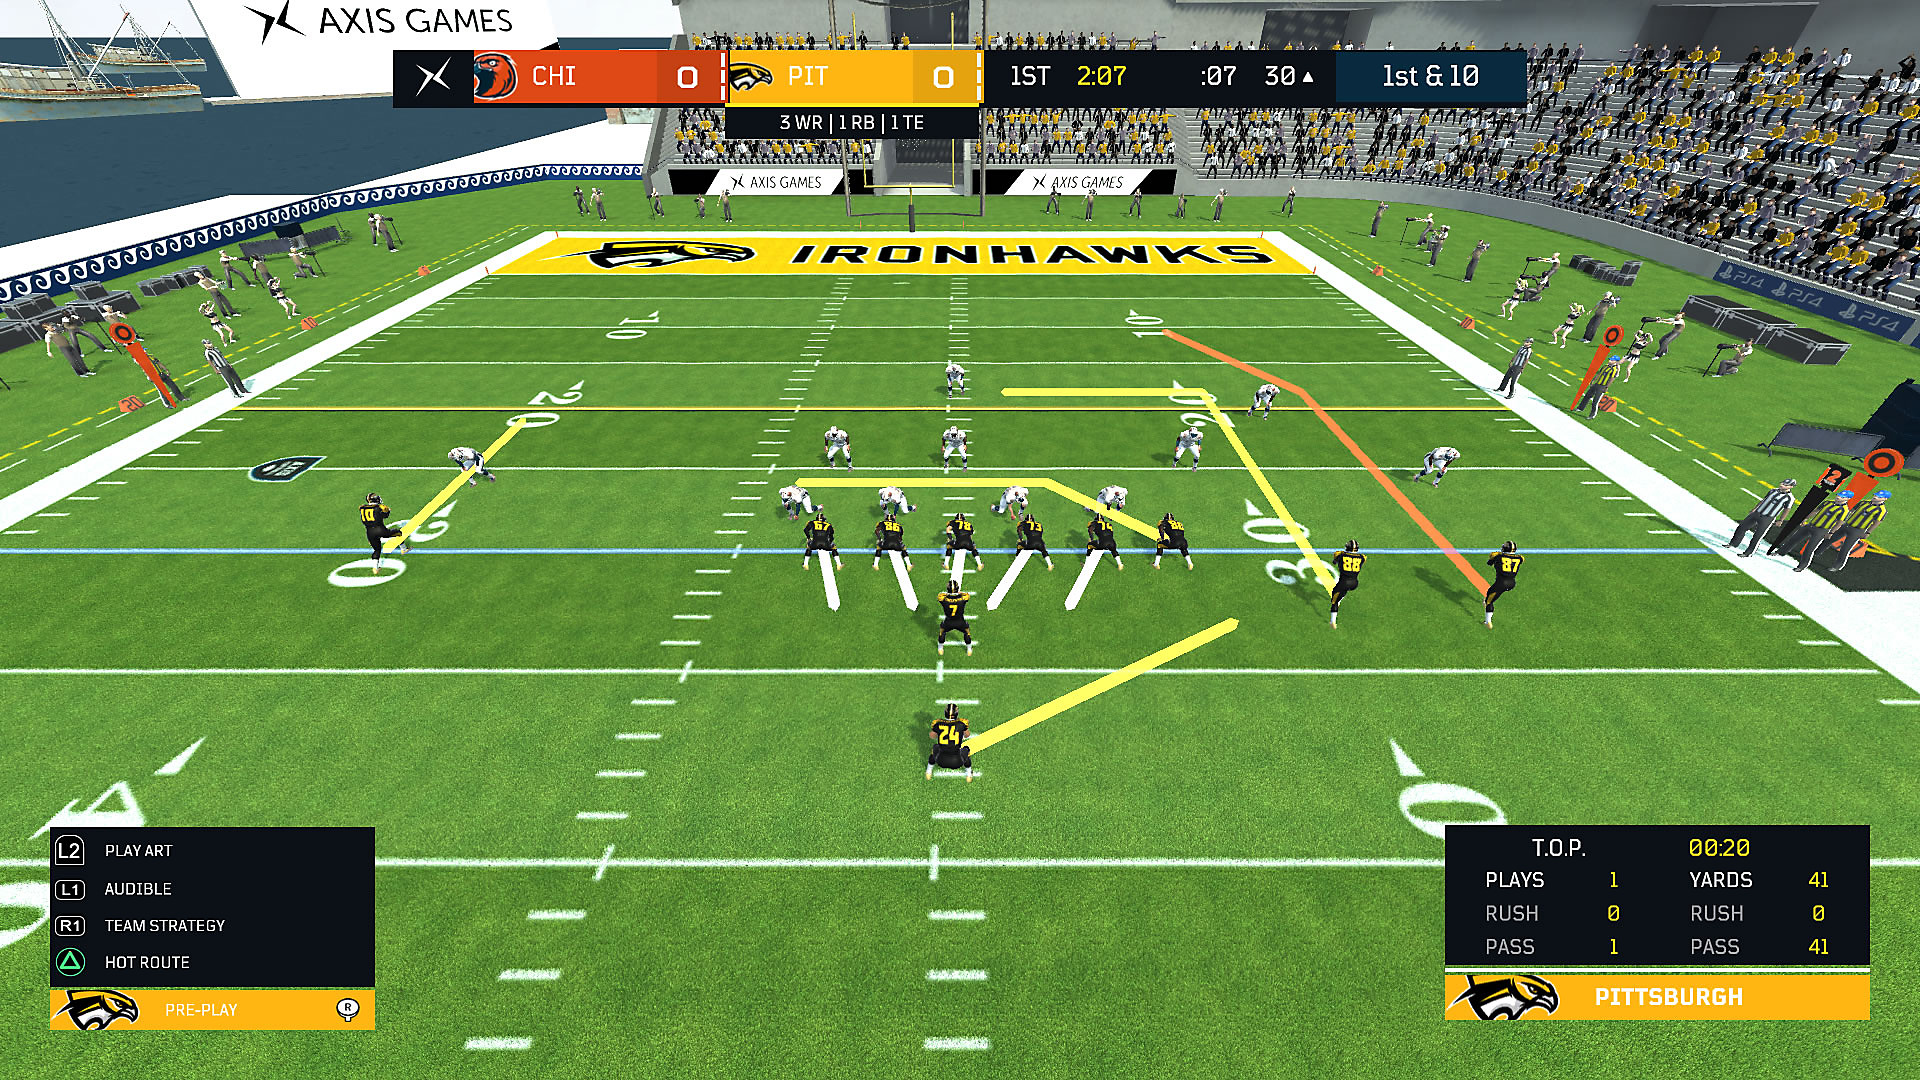 Axis Football 2018 Gameplay